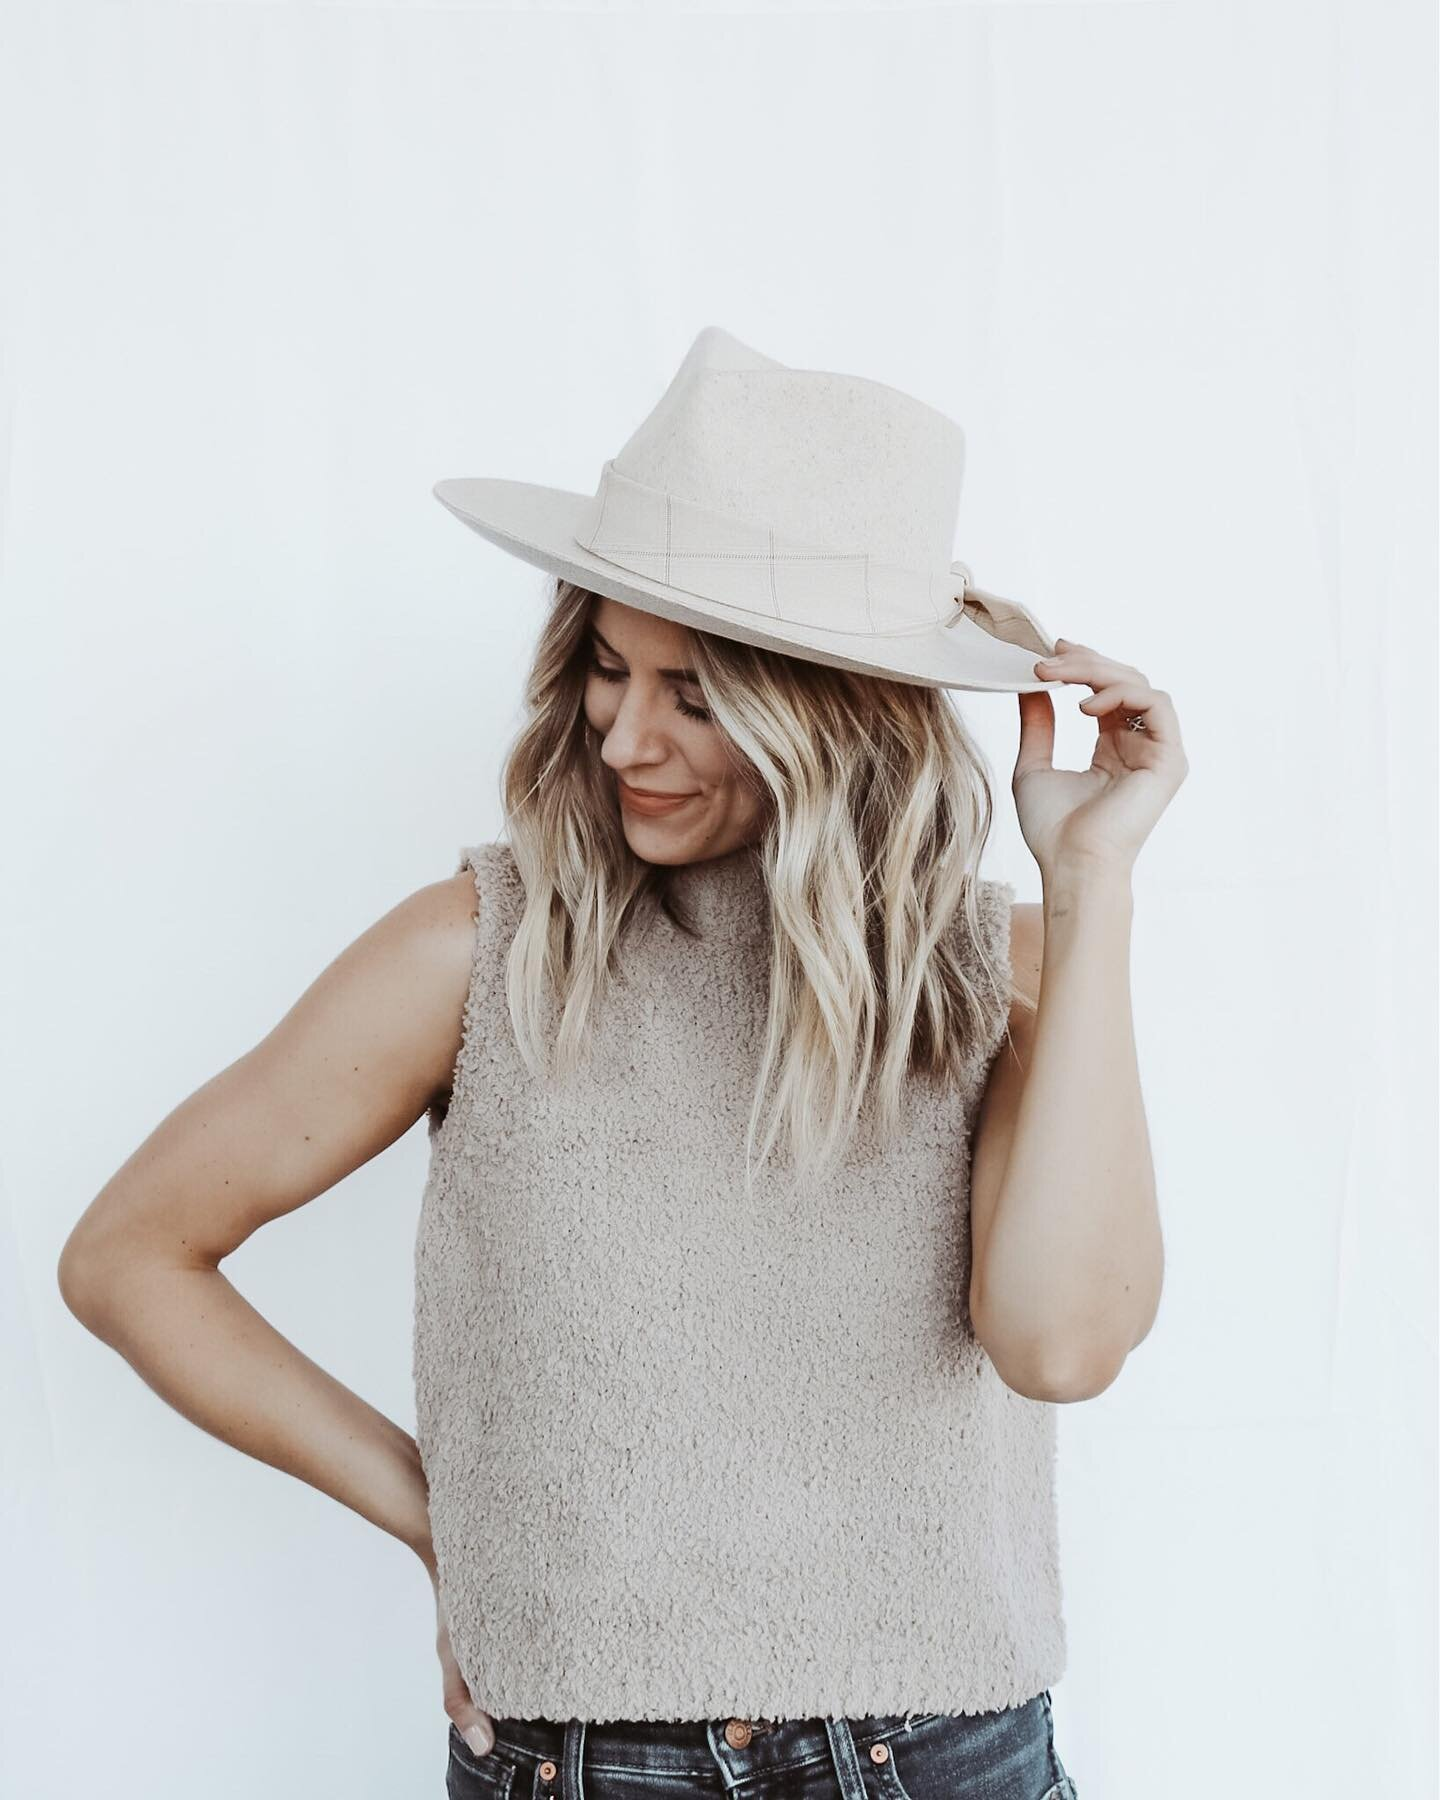 """✨The liner in this hat says """"here's to a woman who wears many hats"""" ✨ and my goodness do we! And at times it almost seems like there's pressure to wear a bajillion hats, and at one time 🤭 but as long as the hat is stylish and you love it, wear it girl 👏🏻 http://liketk.it/36Ctp @liketoknow.it #liketkit #casualstyle #widebrimhat #hat #gigipip #springstyle #springfashion"""